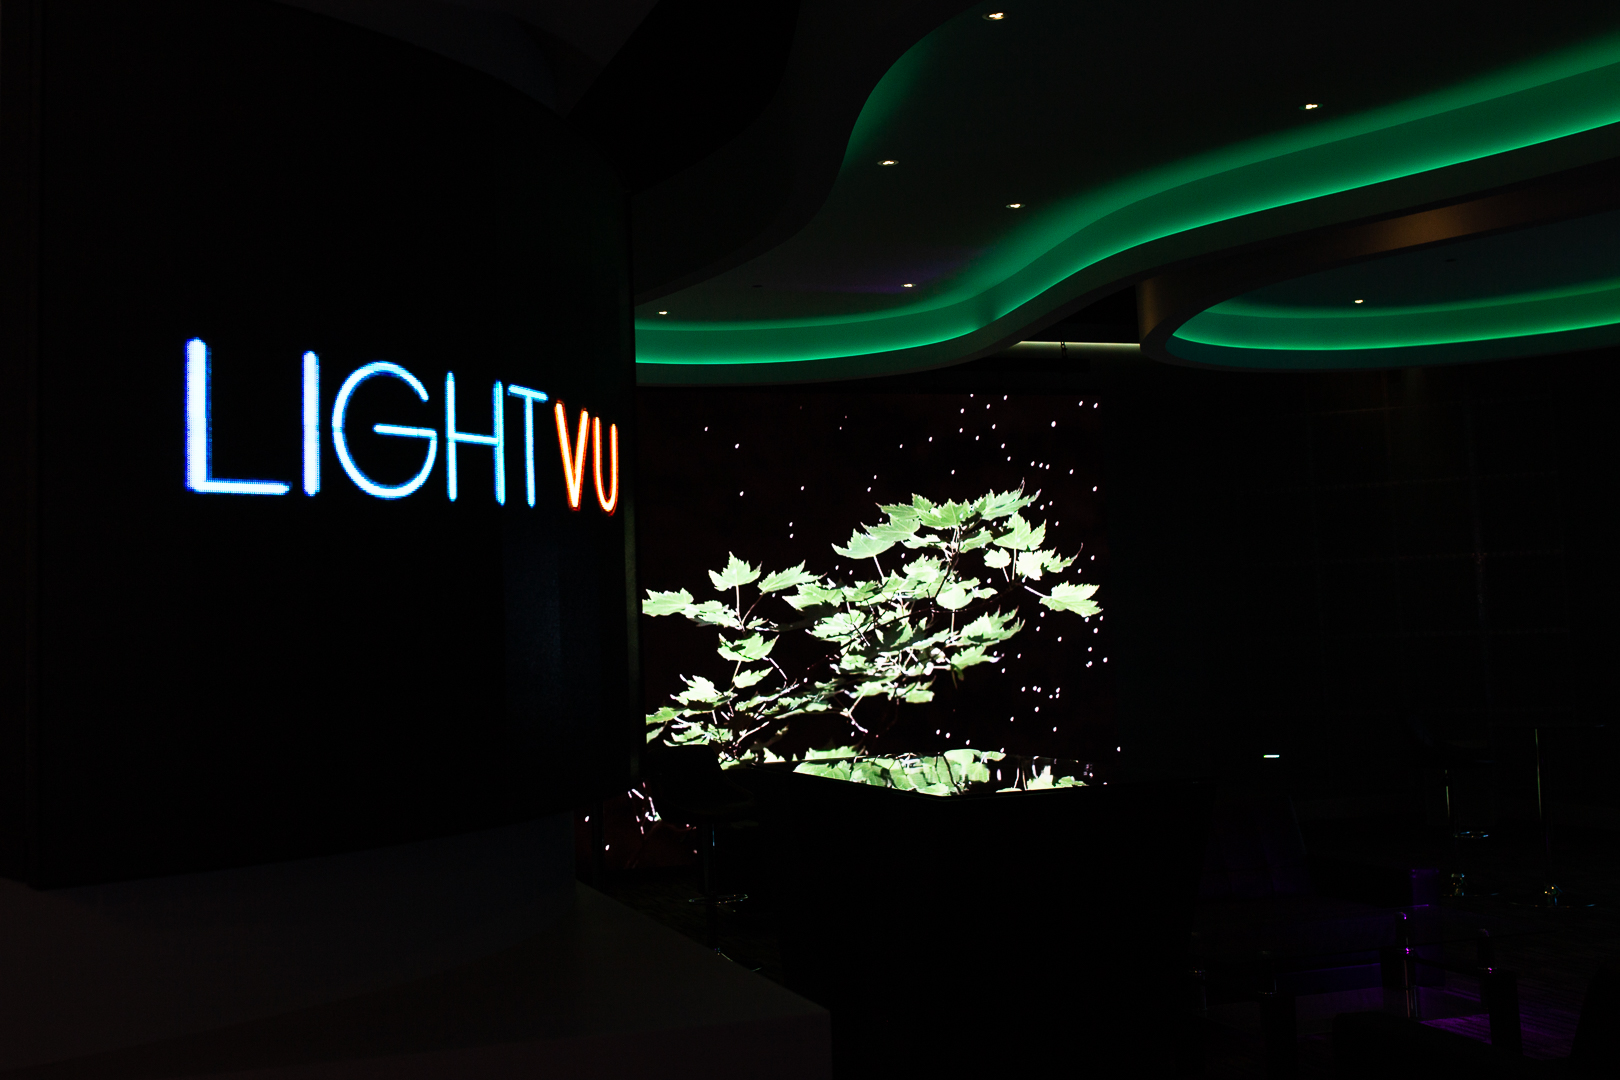 An LED display from LIGHTVU showroom